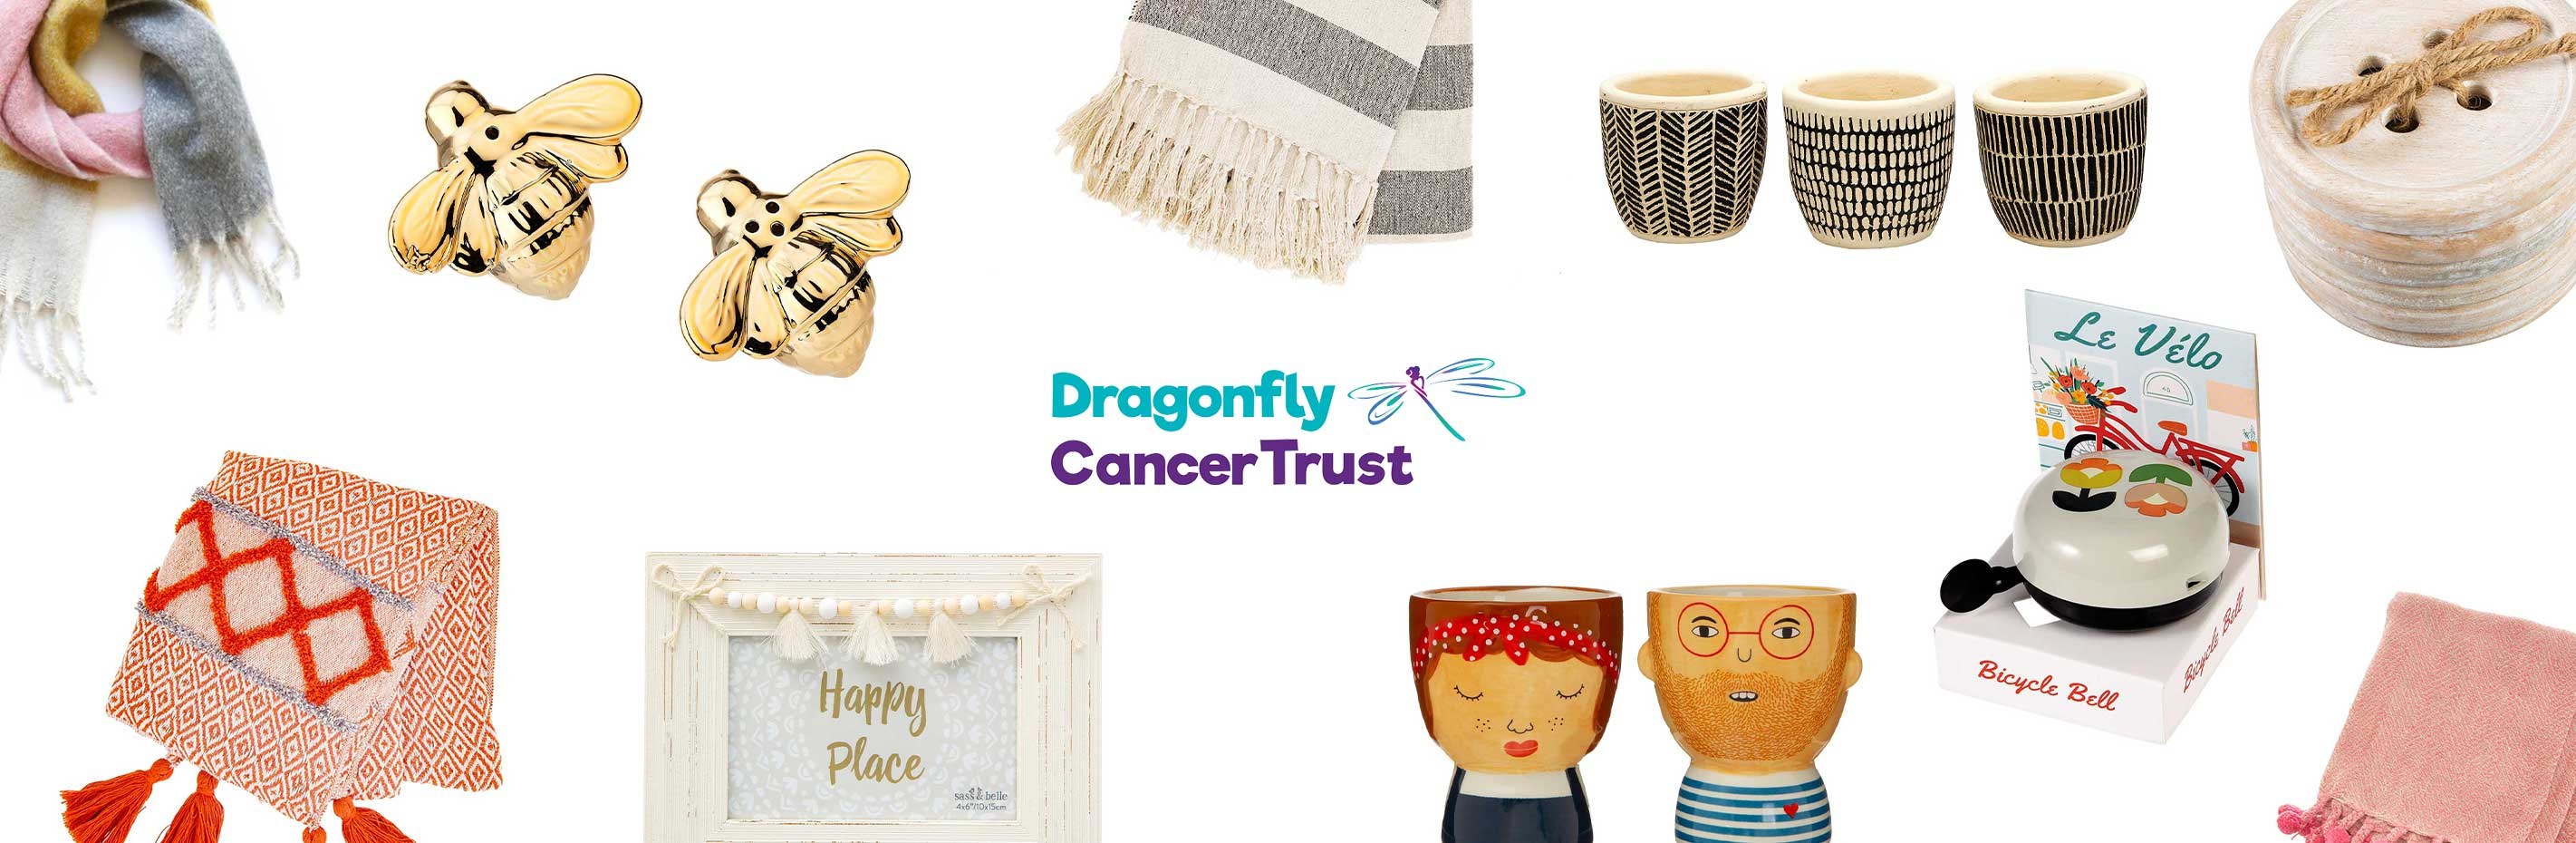 Shop for happy things with Dragonfly Cancer Trust